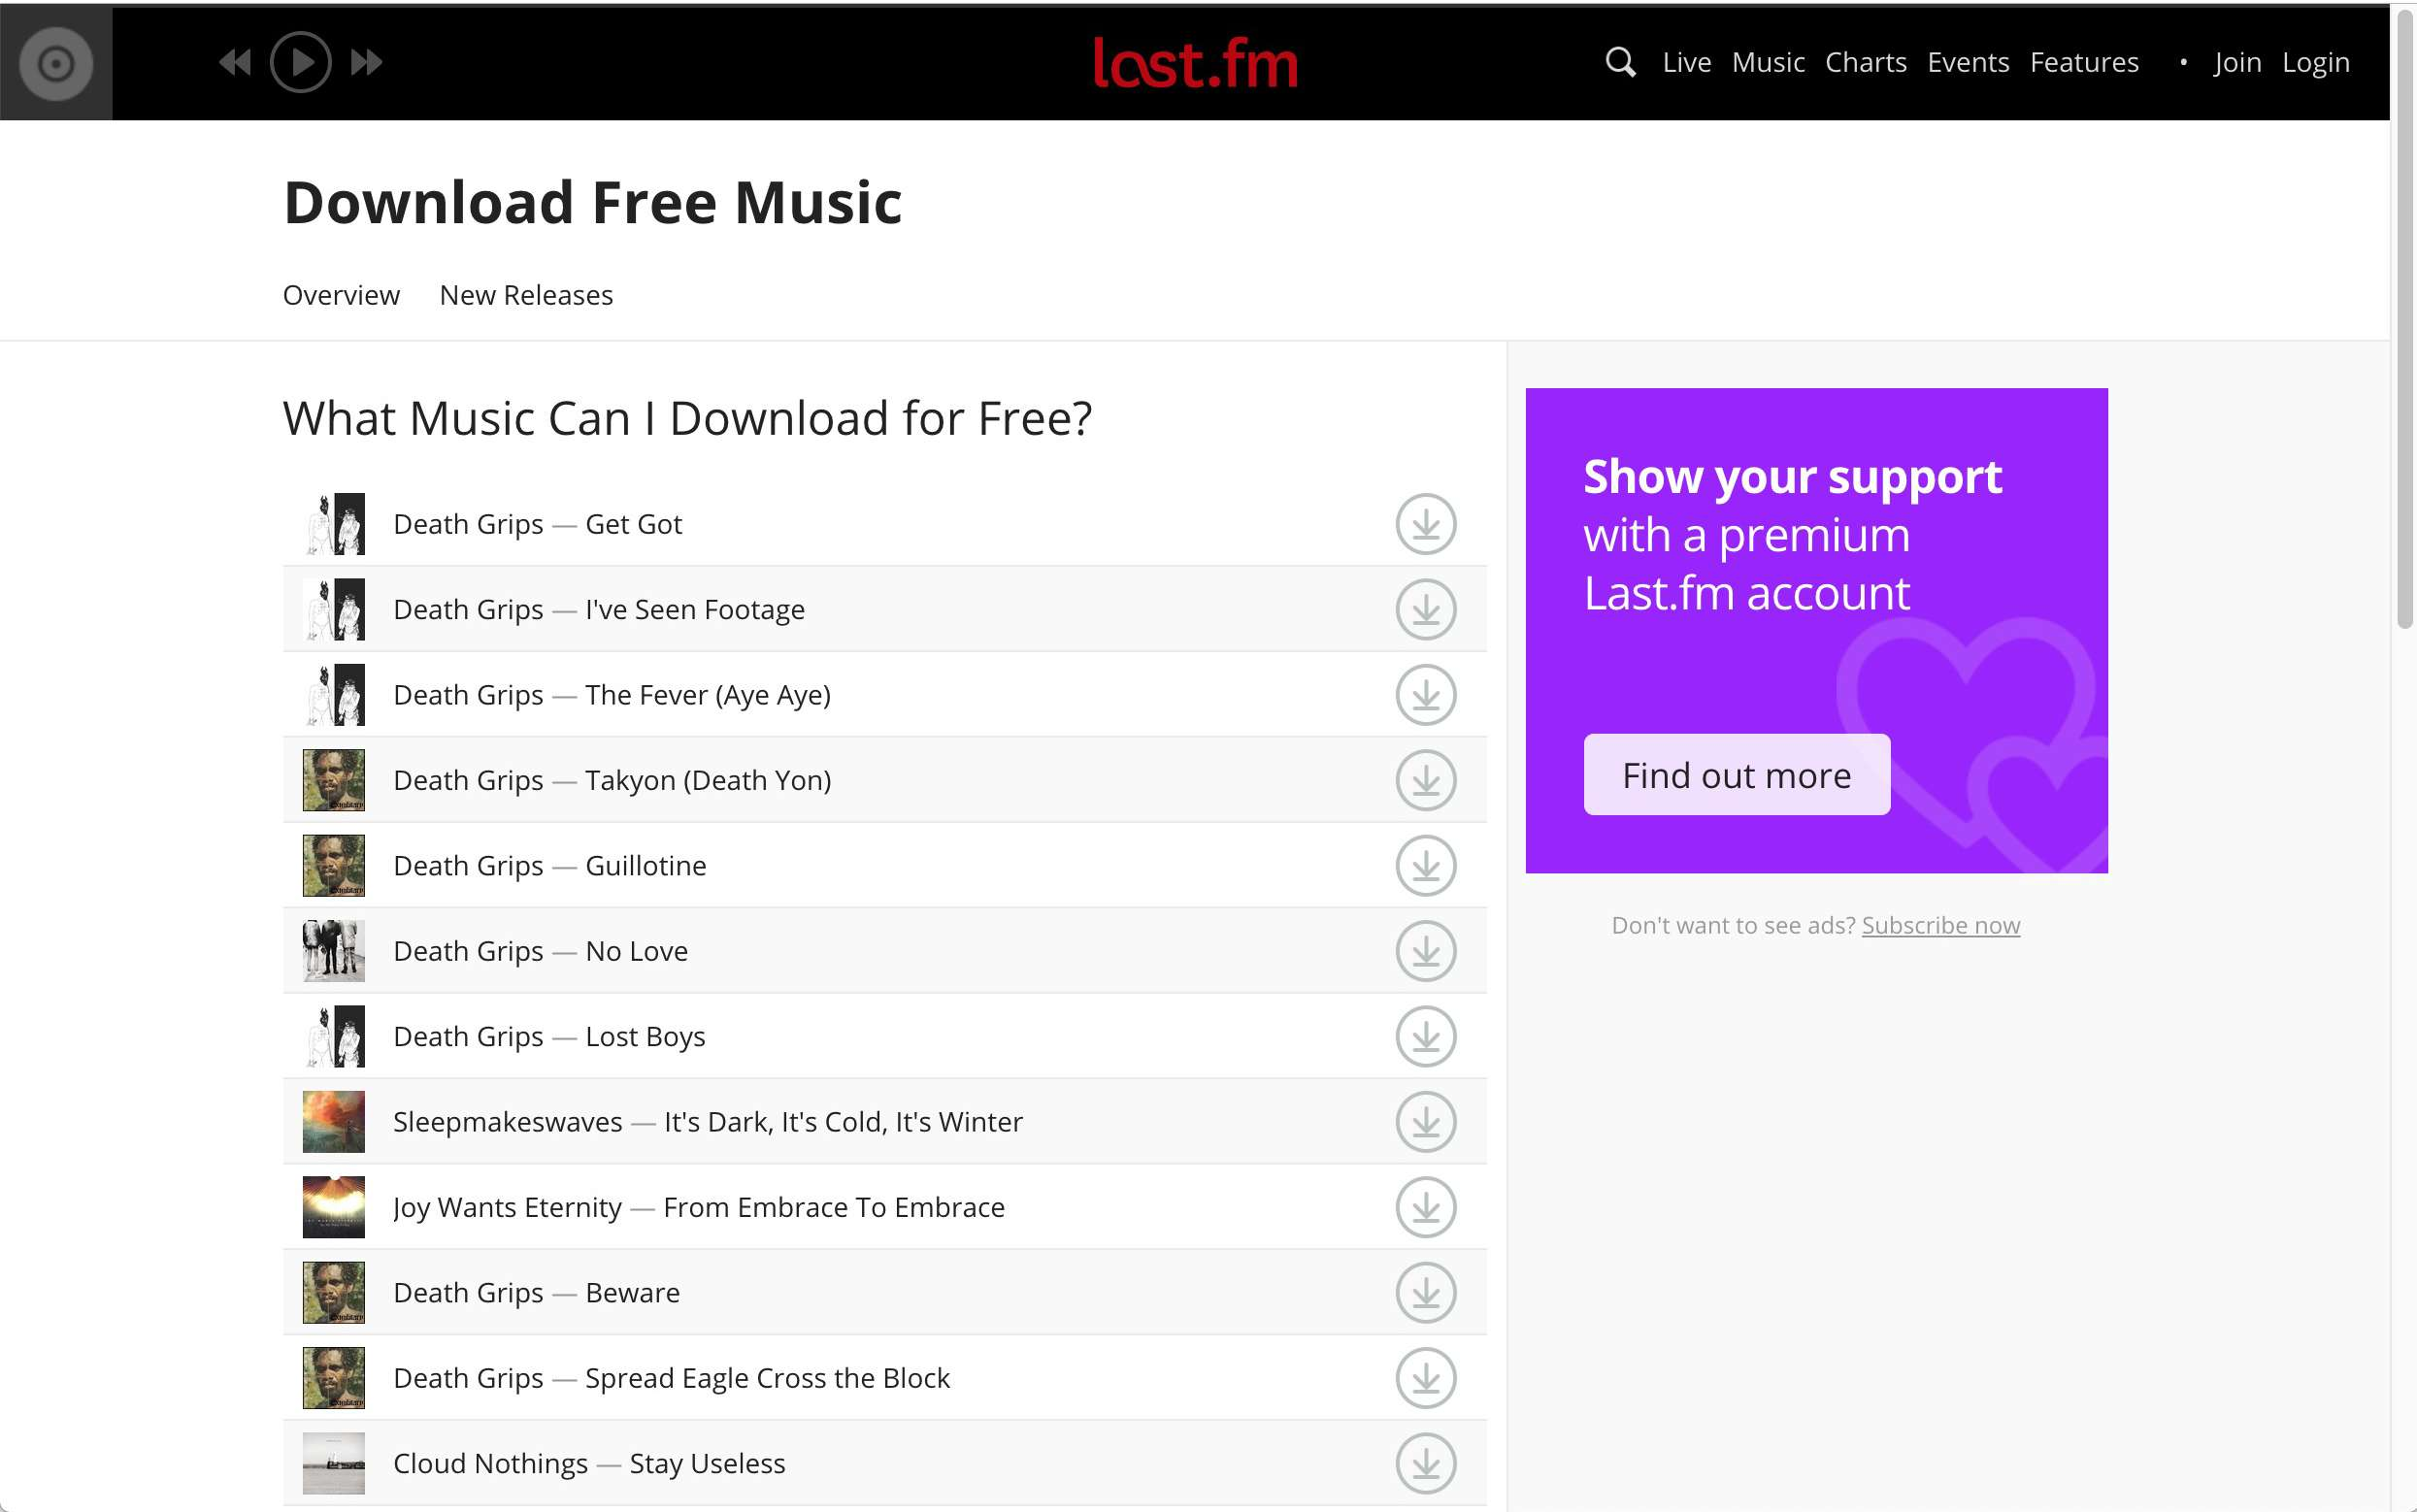 11 best free music websites to download songs legally in 2020.